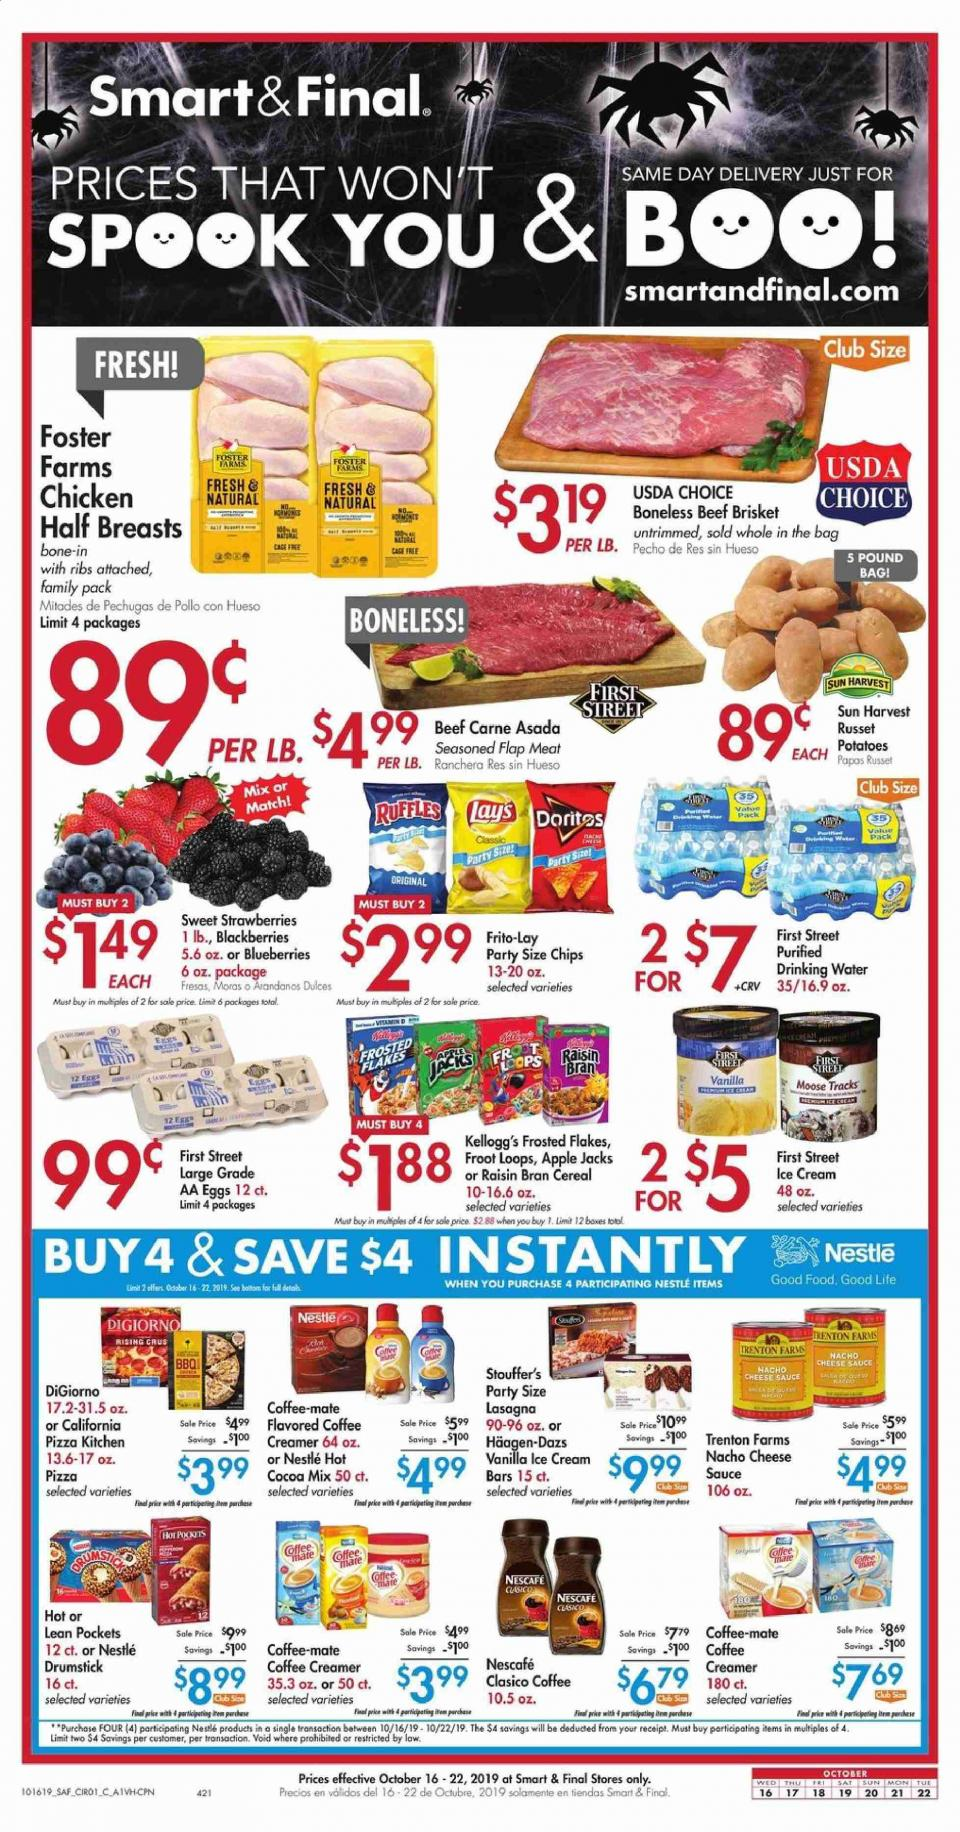 smart and final oct ad valid from 16 22 2019 buy 4 save 4 deals with